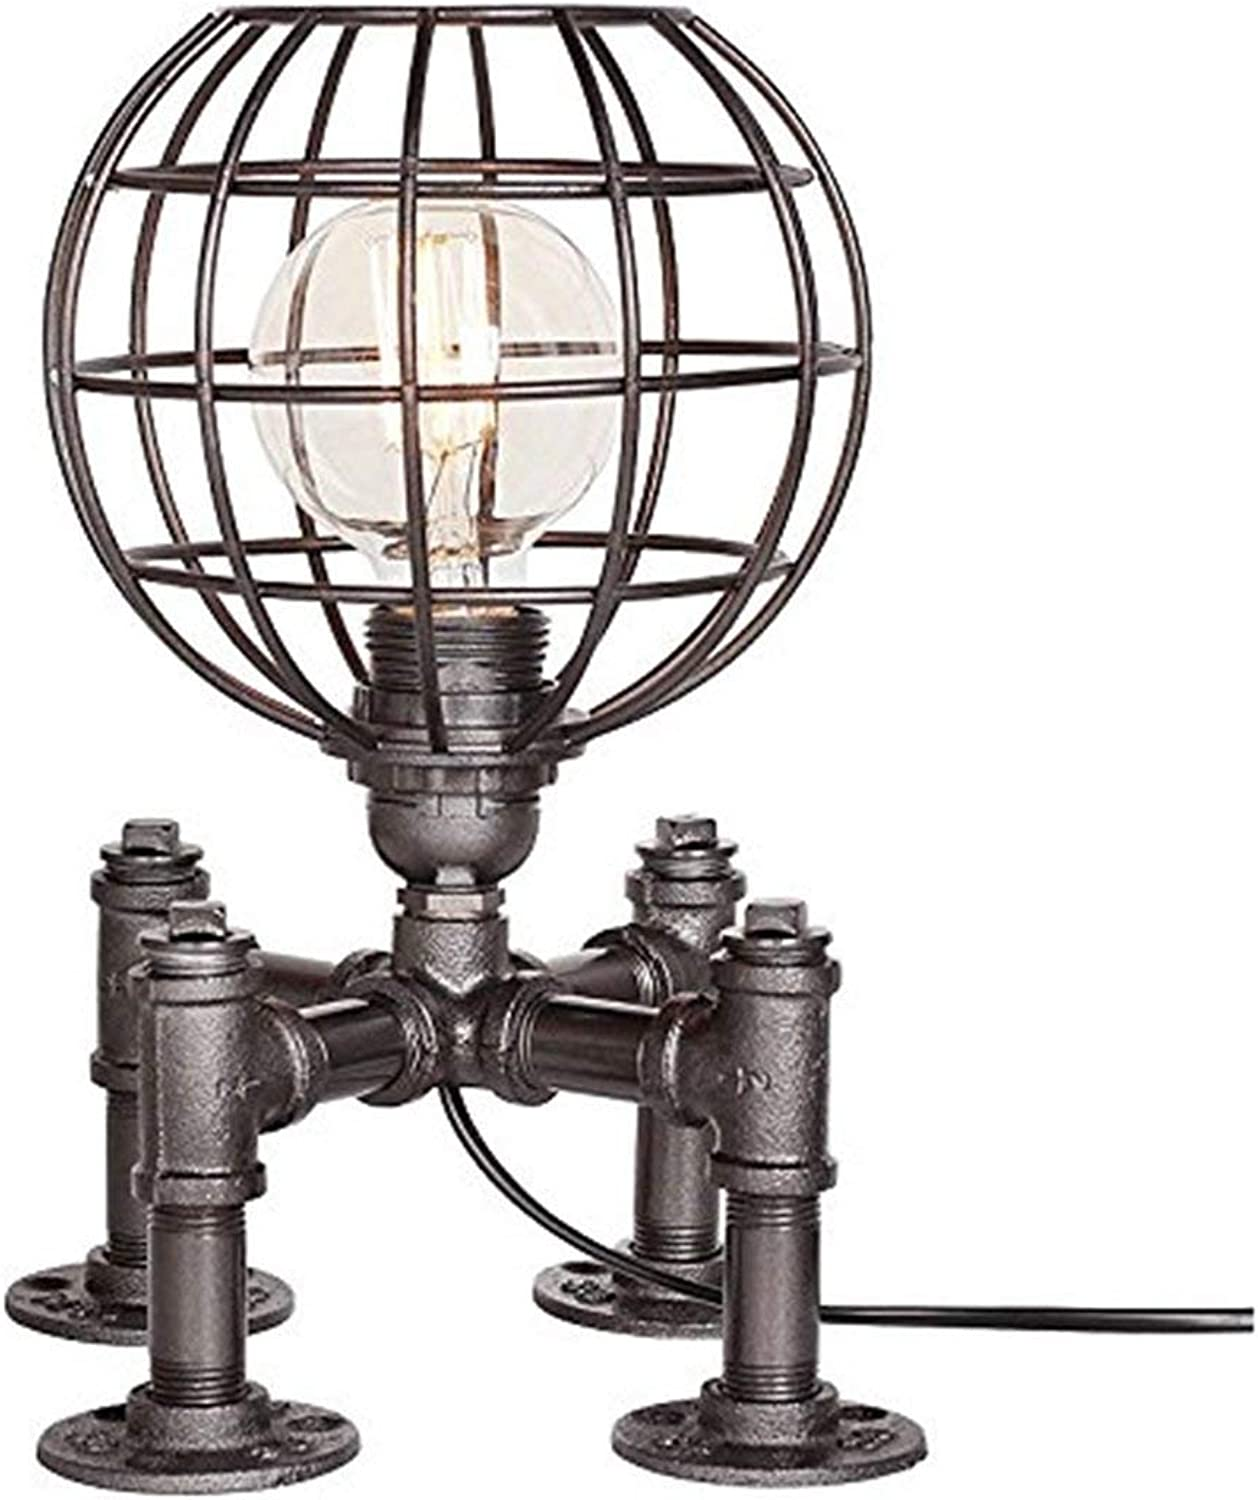 Perfect Home Vintage Industrial Table Lamp Steampunk Table Light Rustic Water Pipe Style Bedside Desk Lamp E271 Max 40W Durable